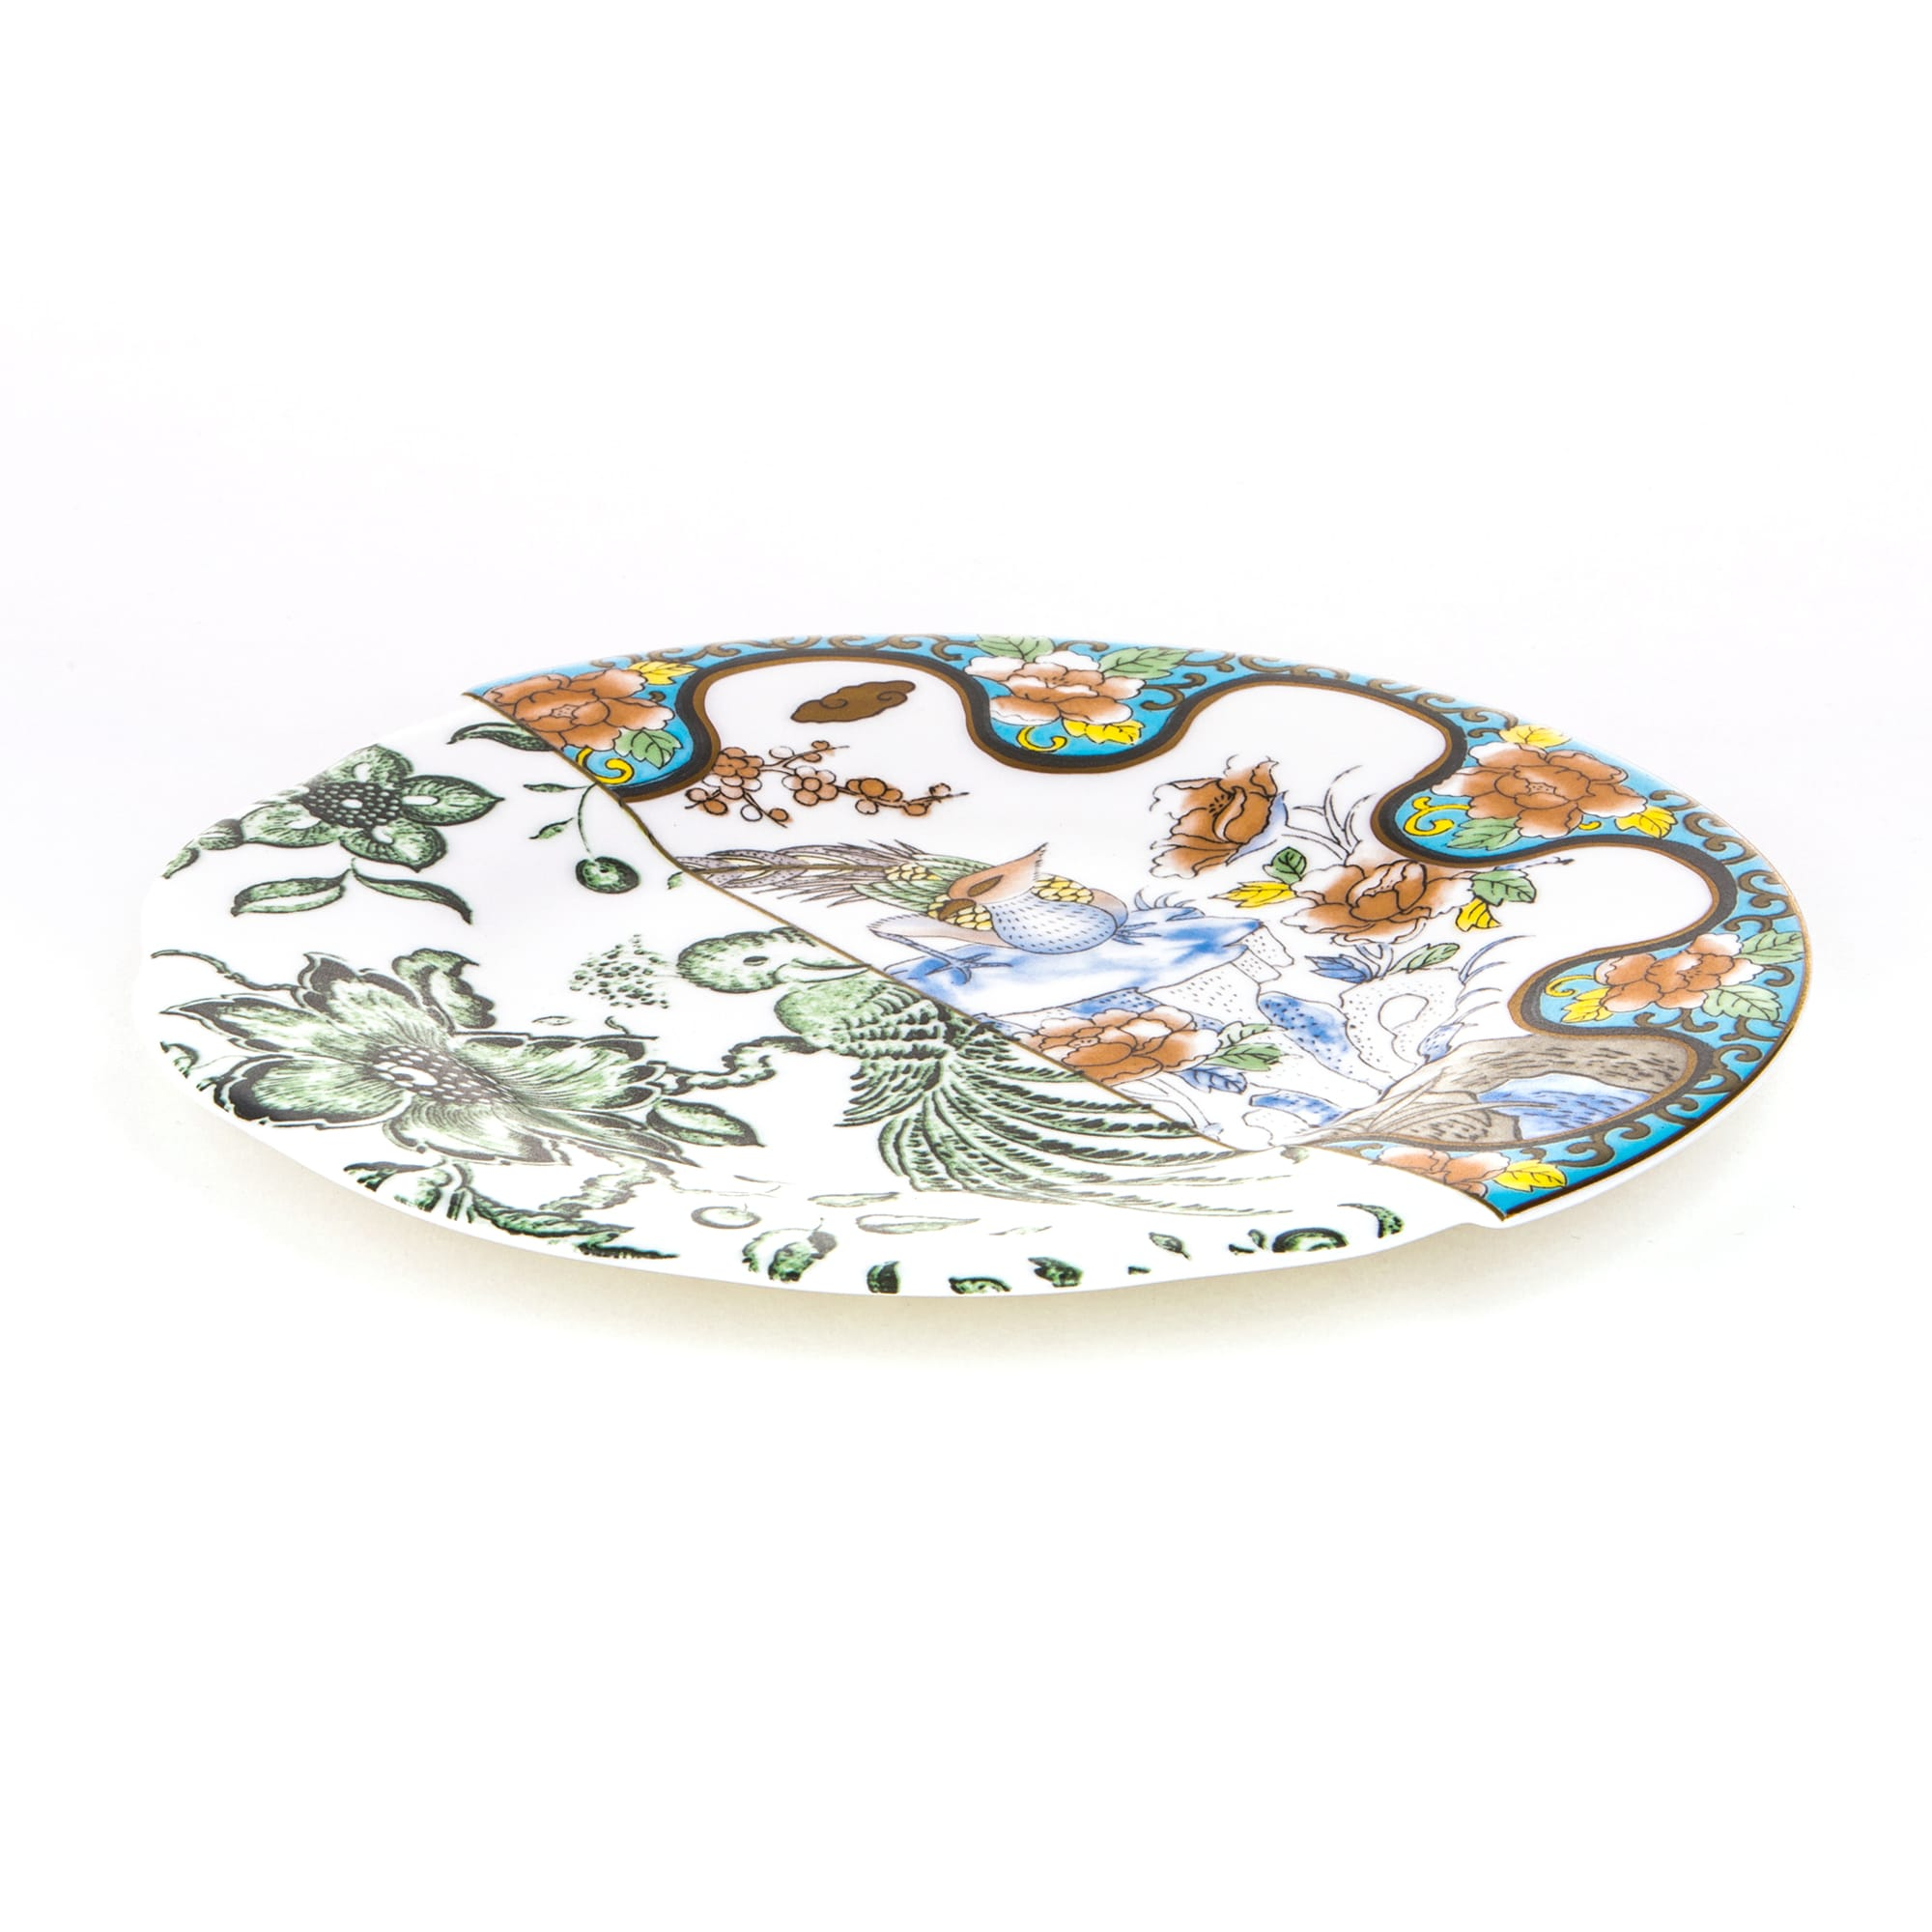 Seletti_HYBRID-Art-de-la-Table-Zoe-09702-2